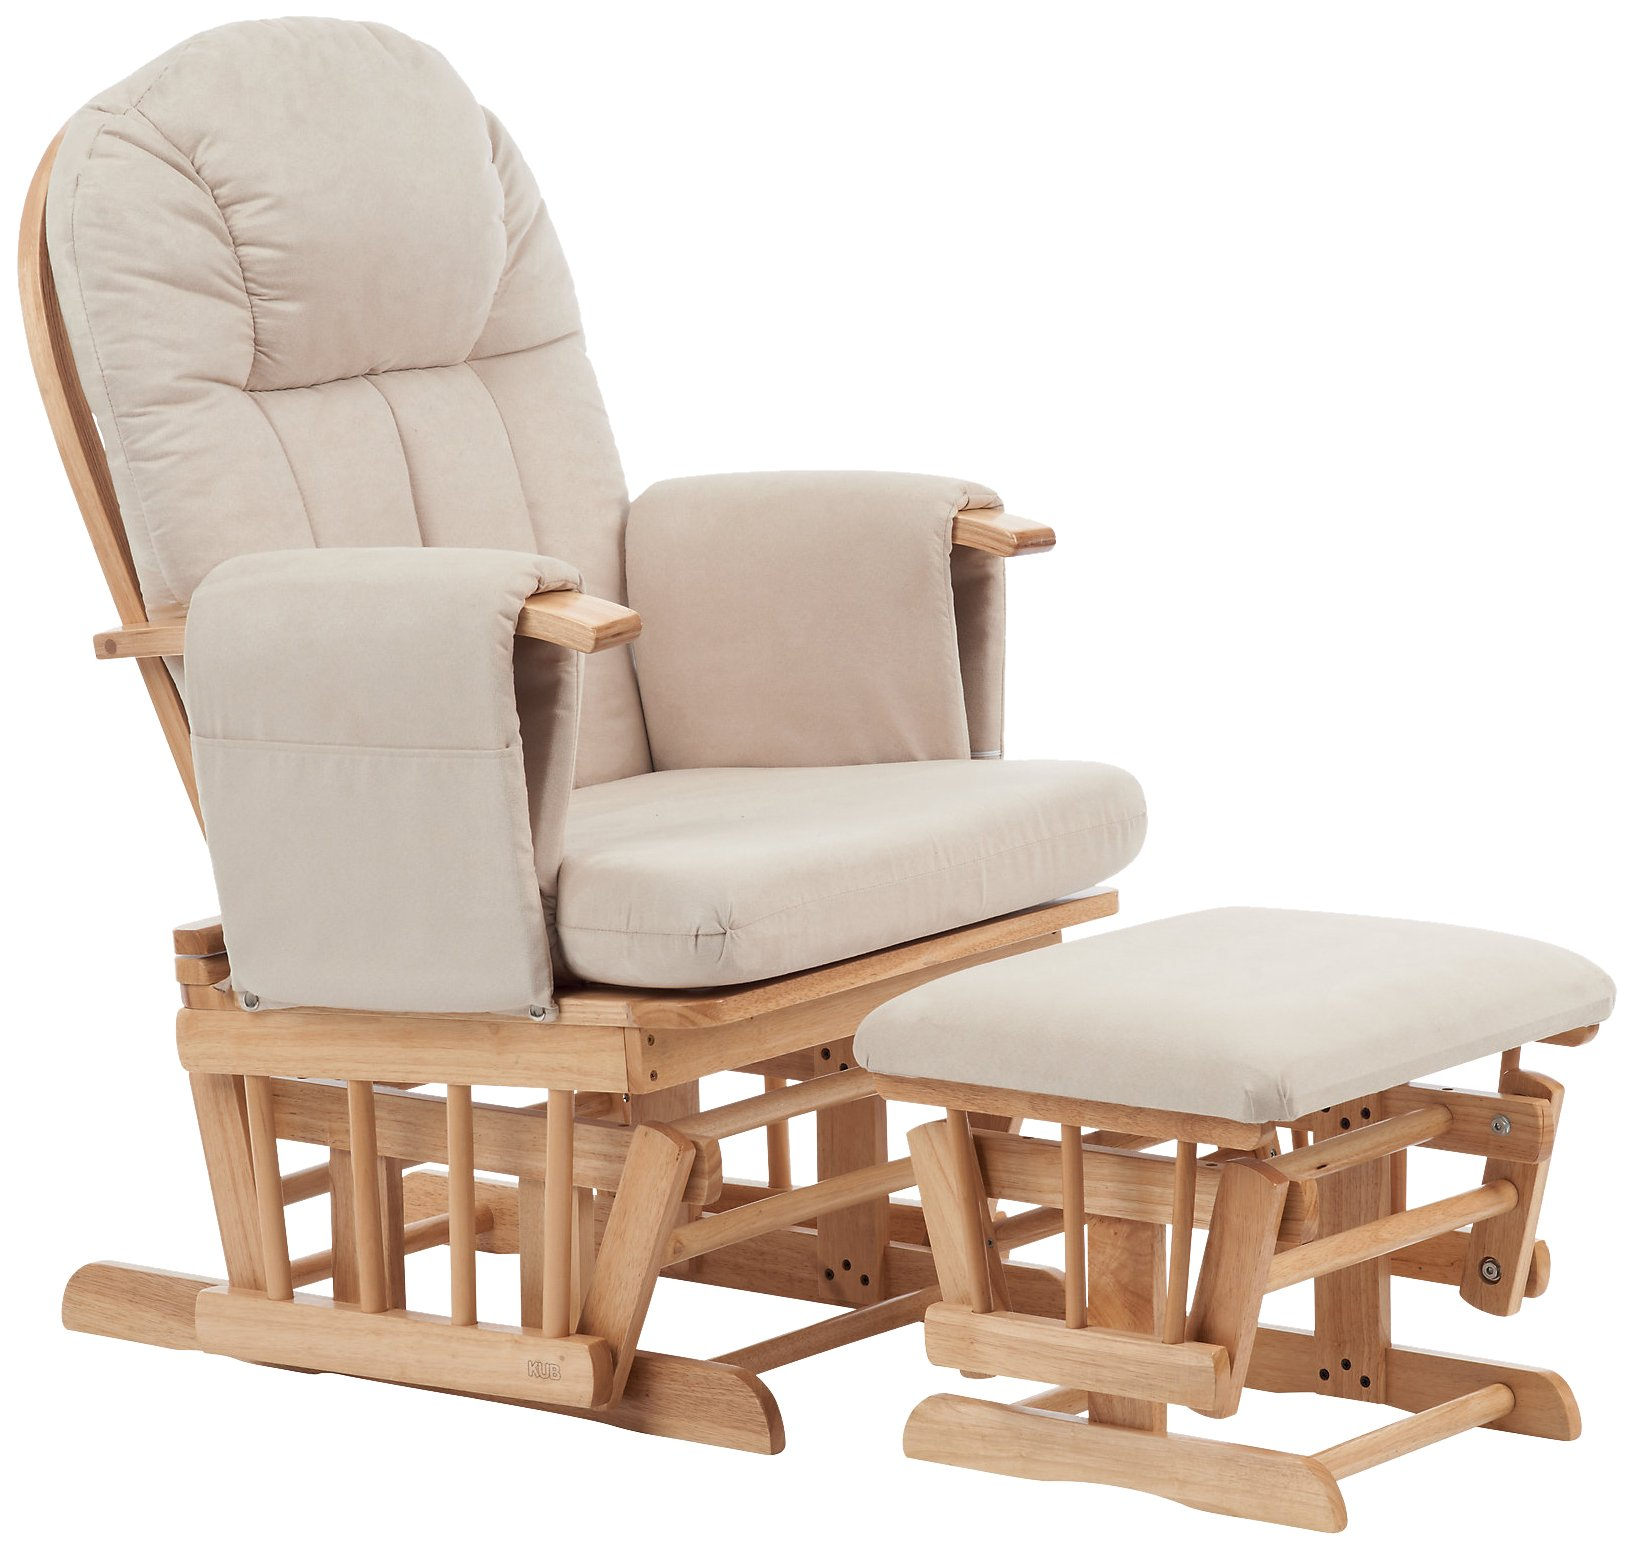 Mothercare Natural Reclining Glider Chair with Cushion